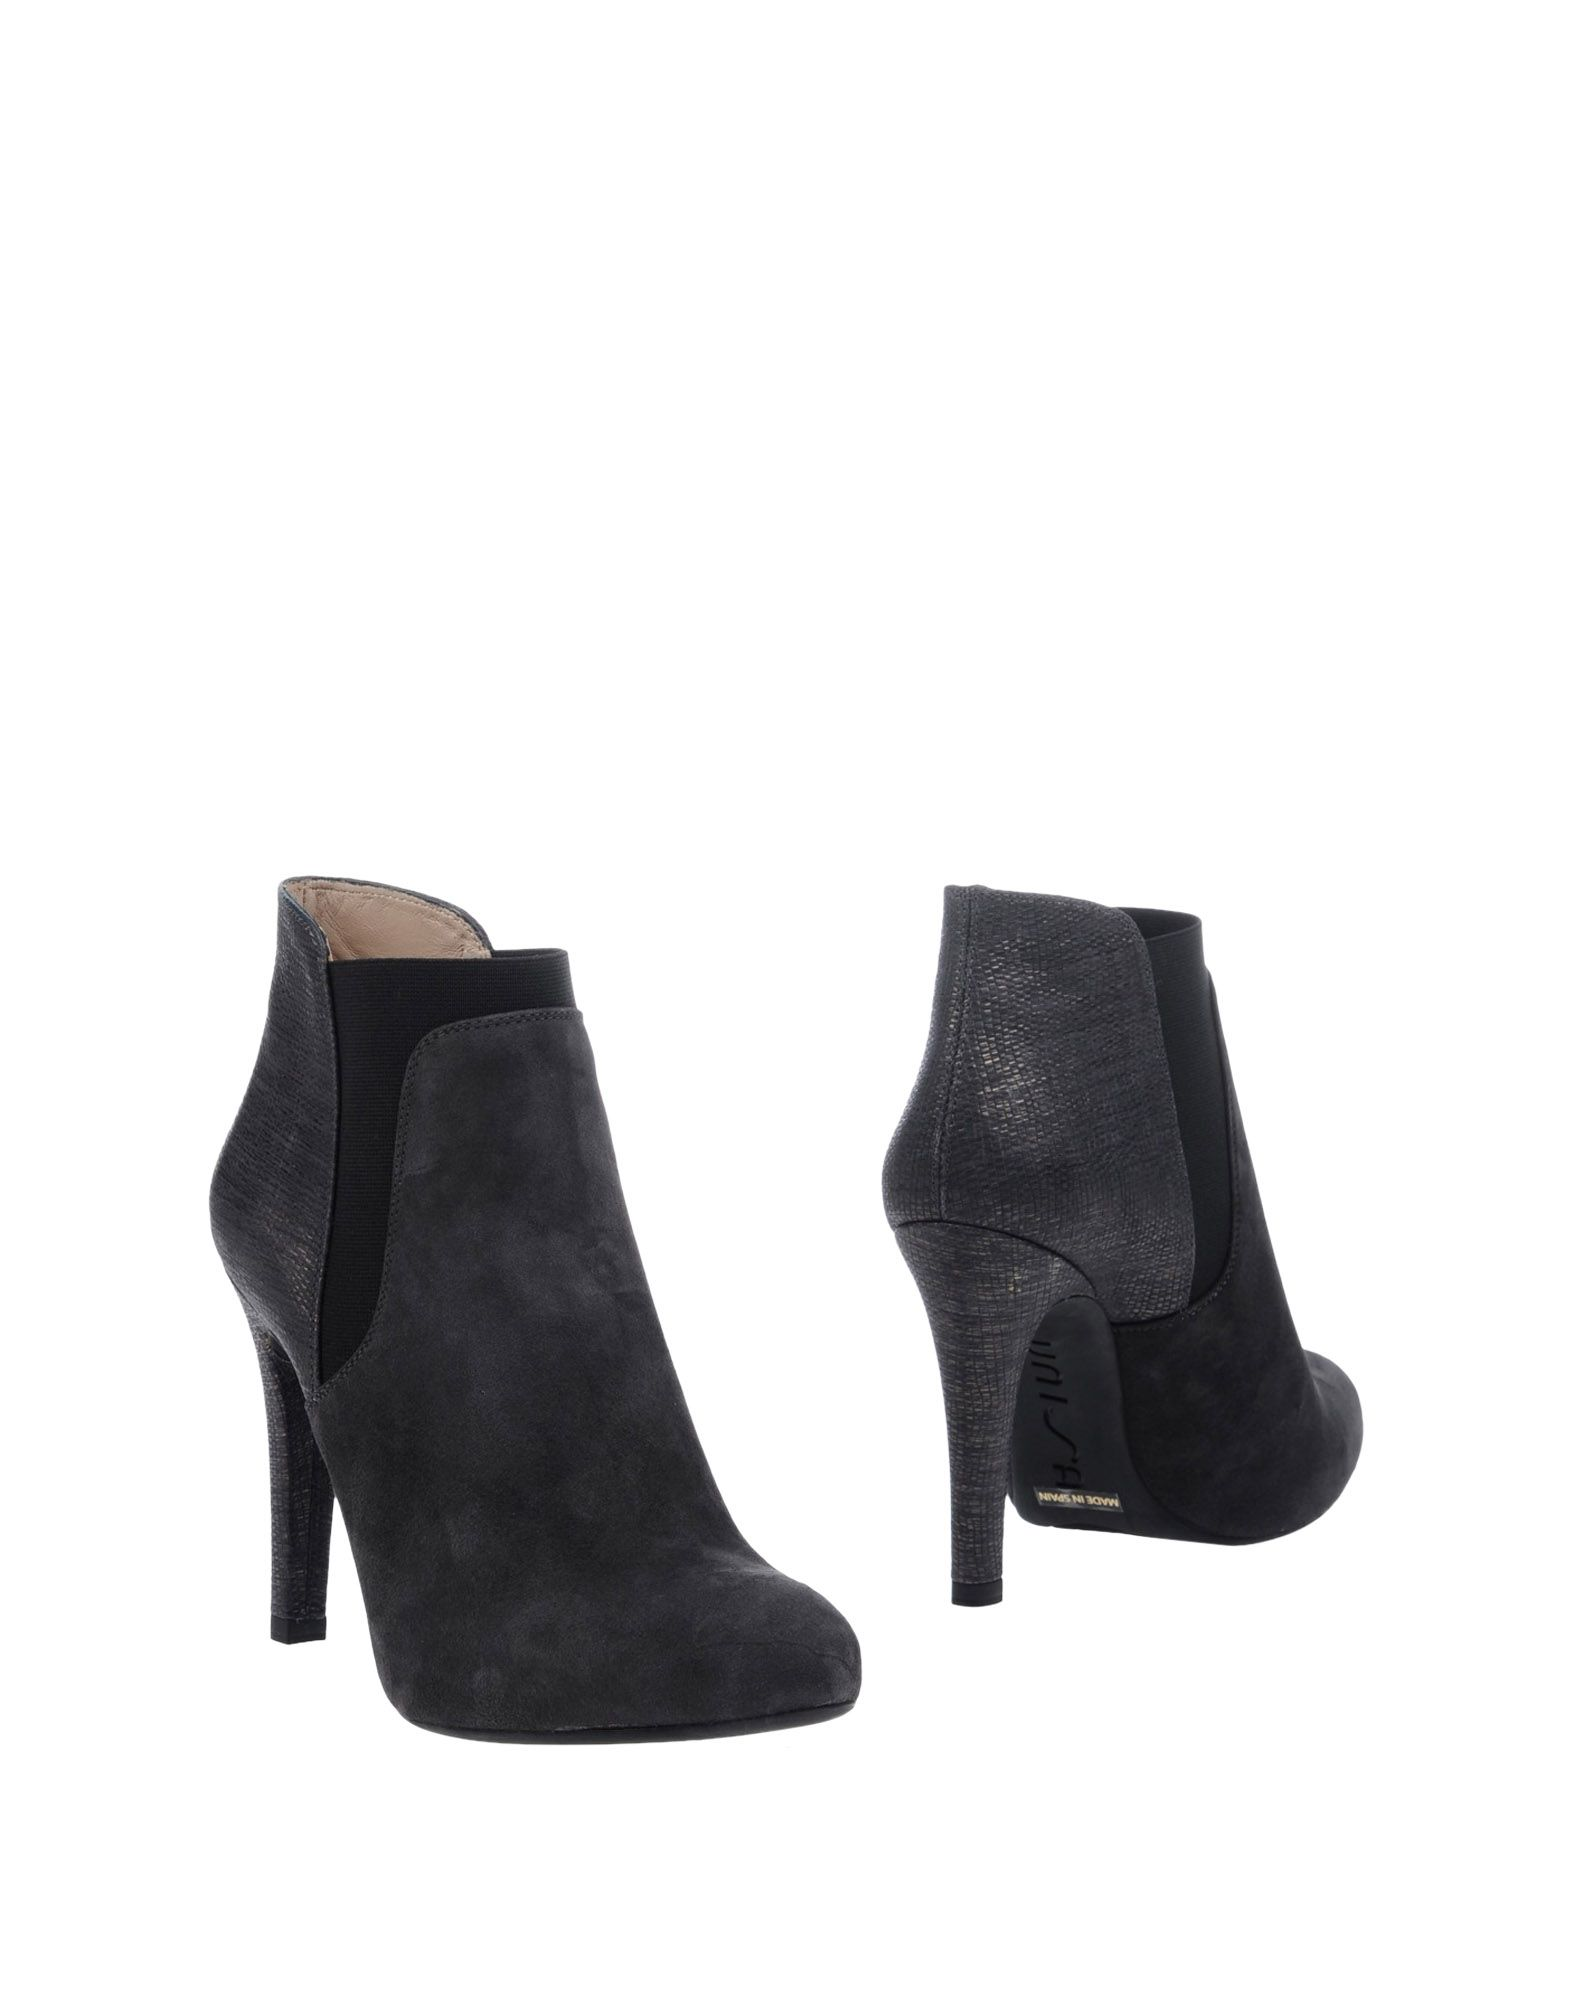 UNISA Ankle Boot in Grey